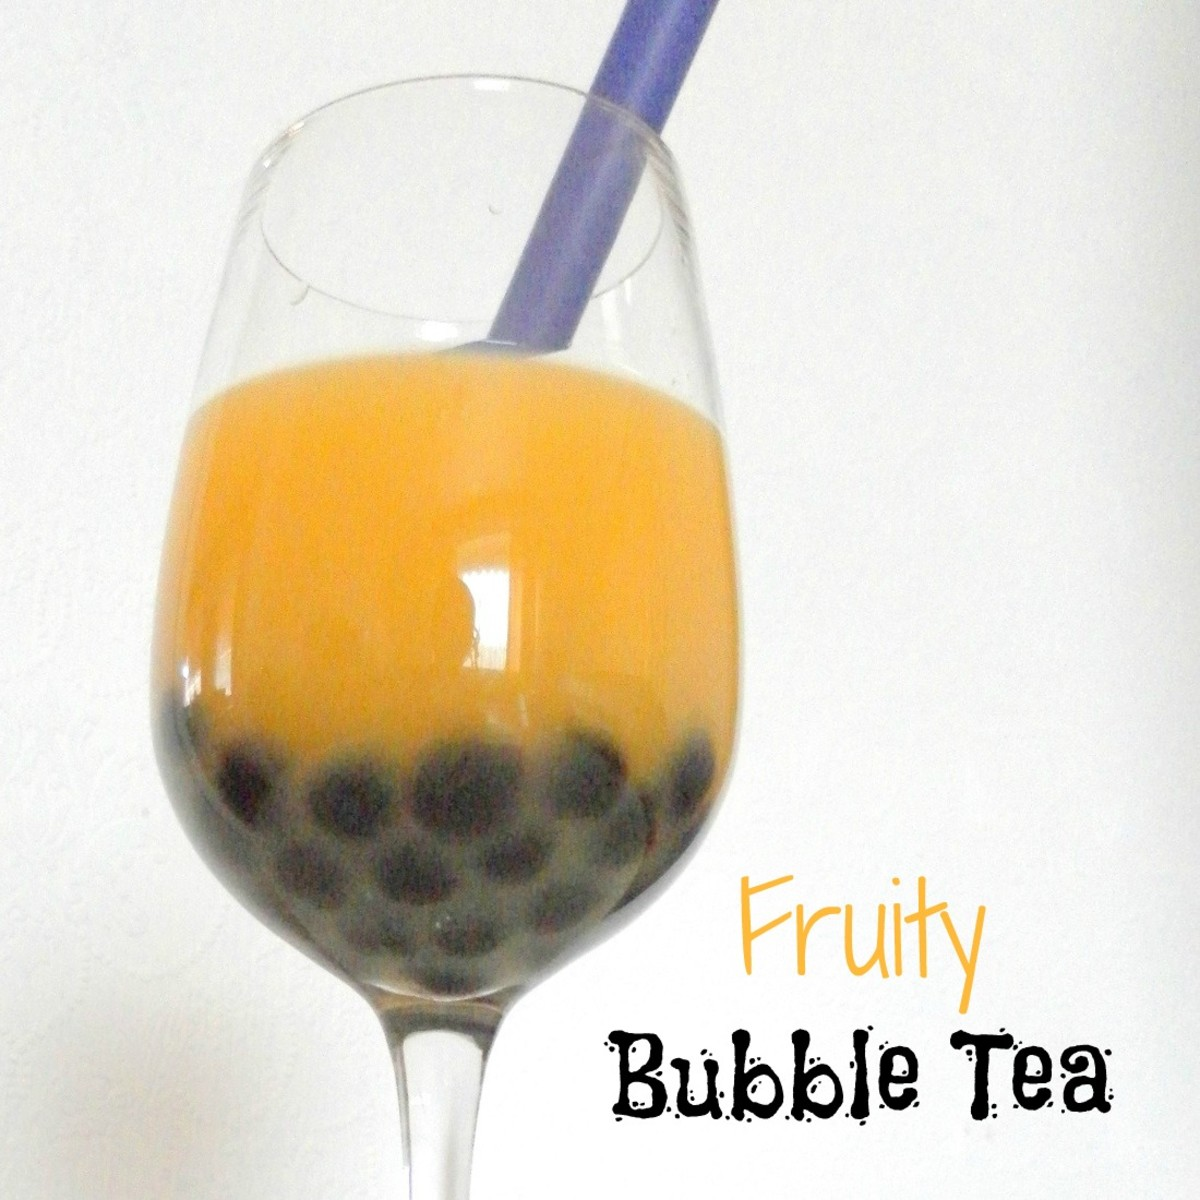 Homemade Fruity Bubble Tea.